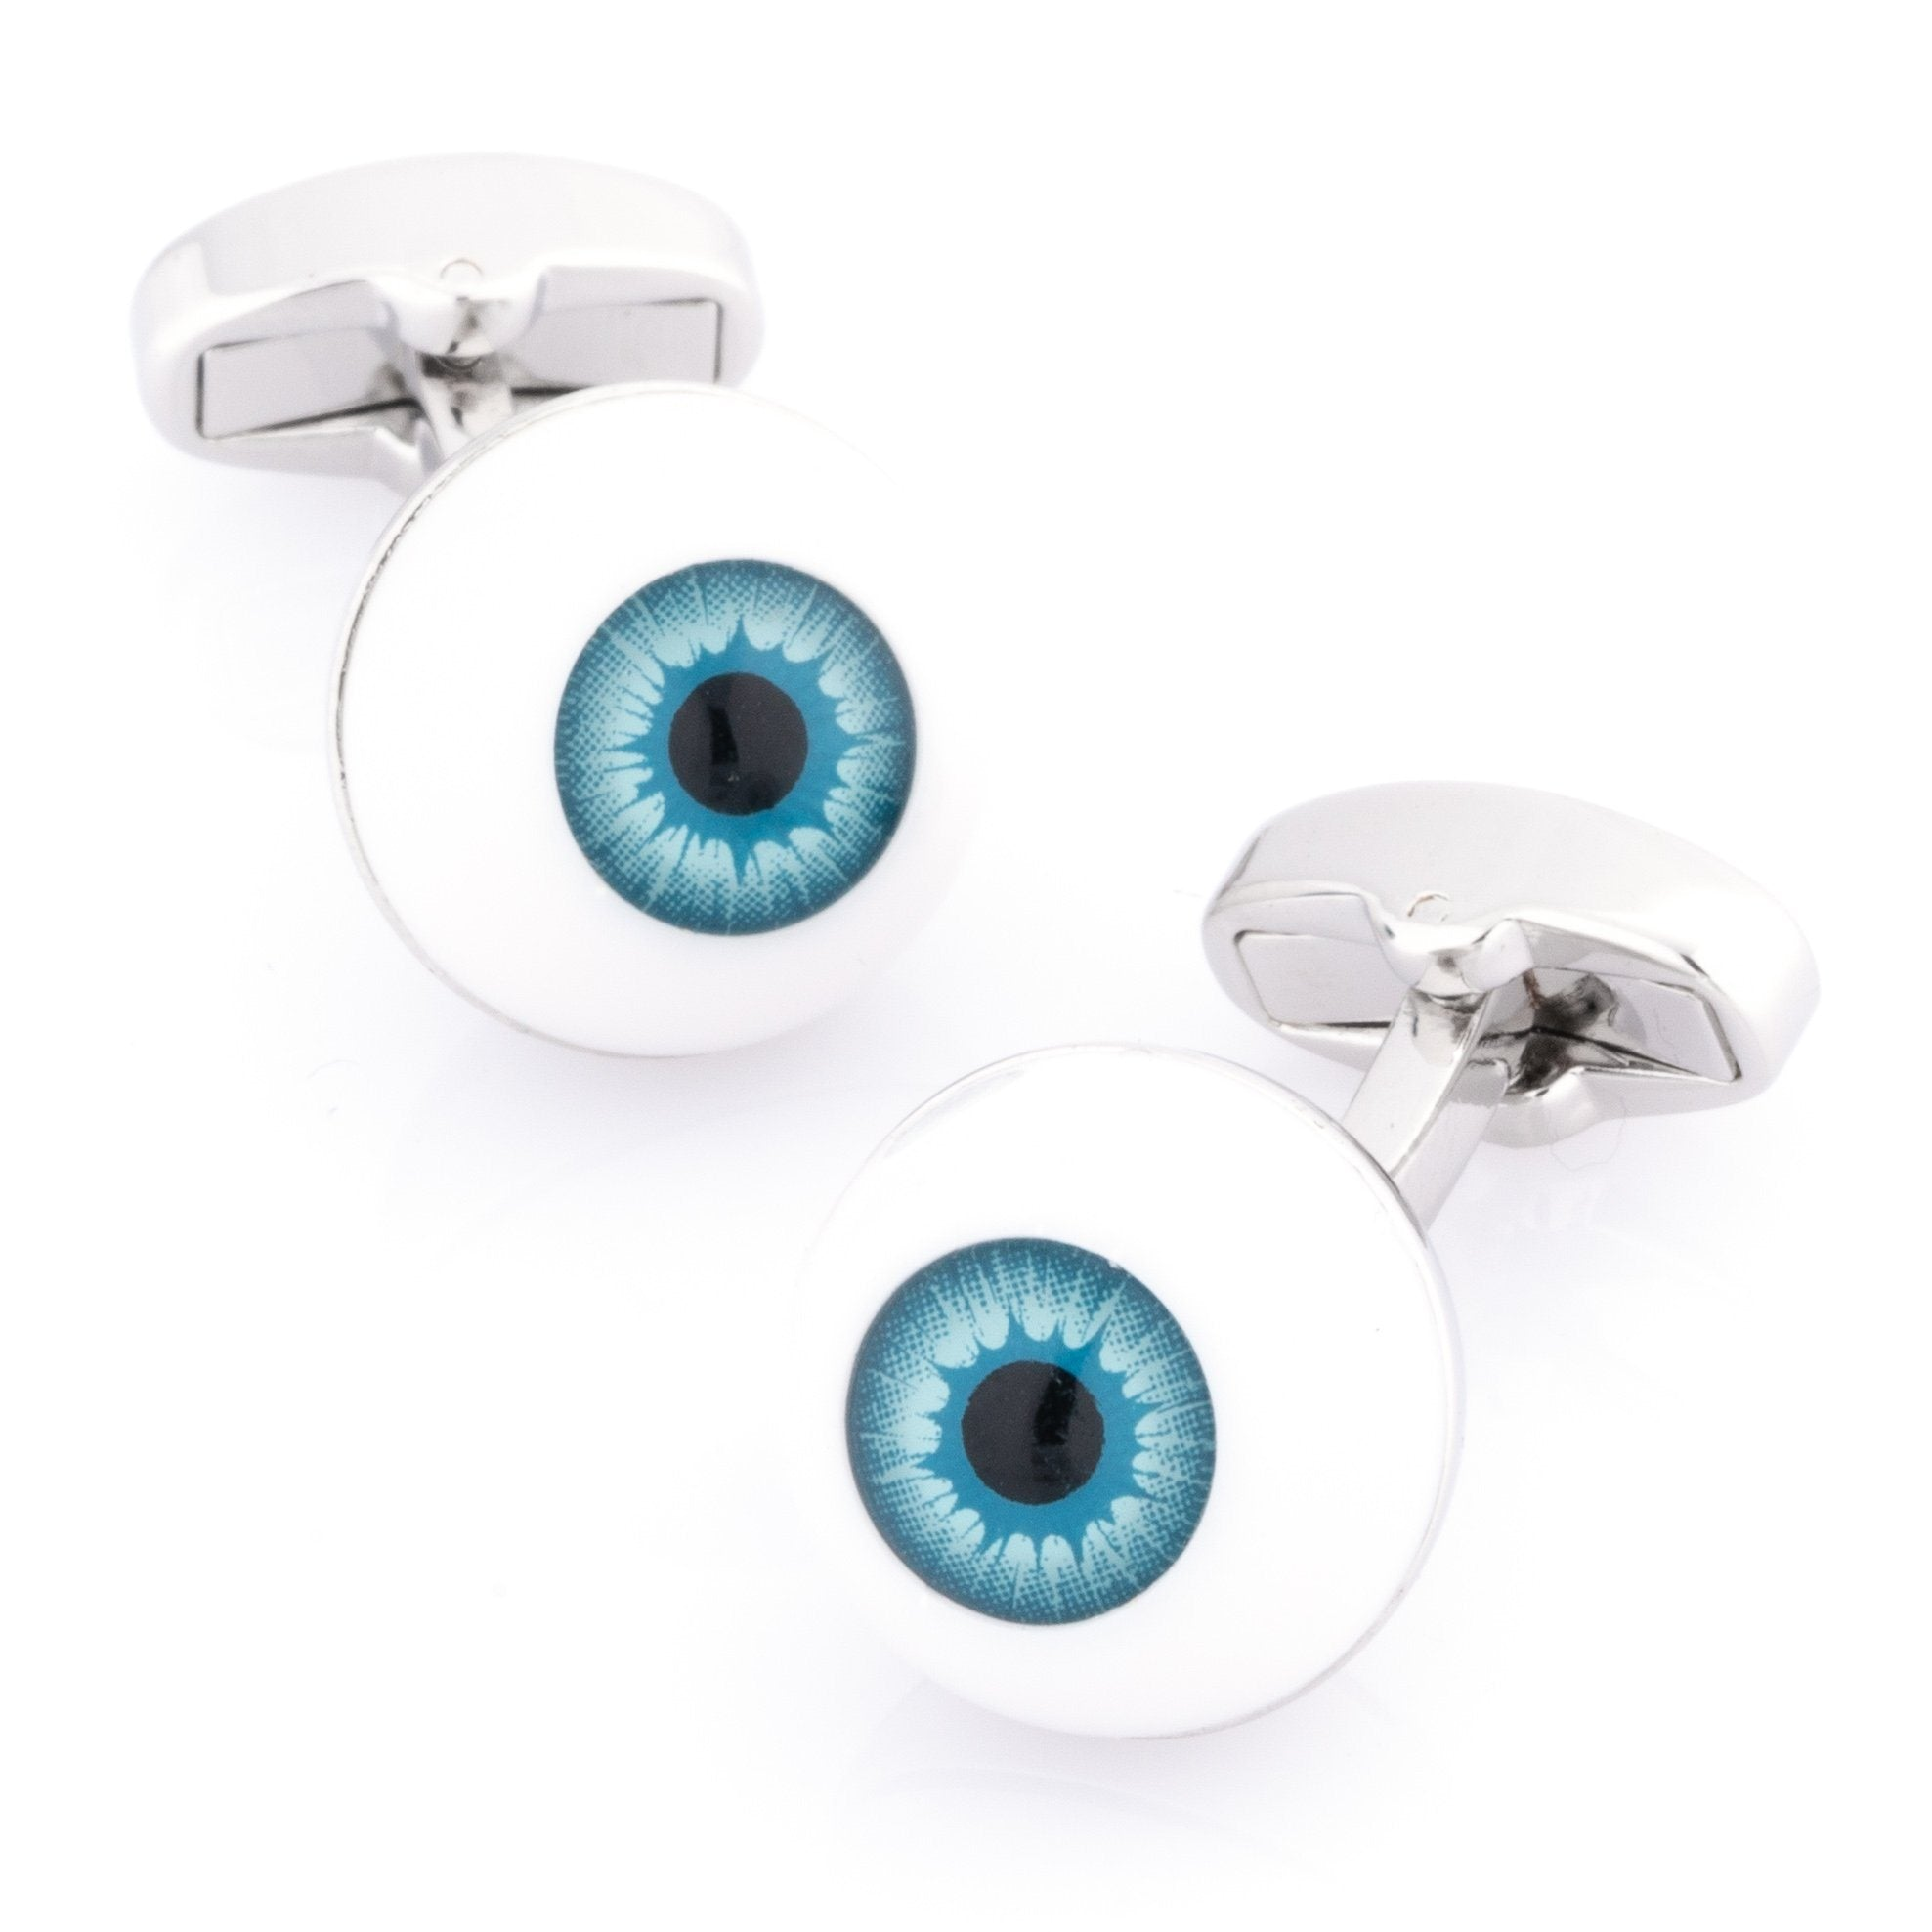 Eyeball Cufflinks Novelty Cufflinks Clinks Australia